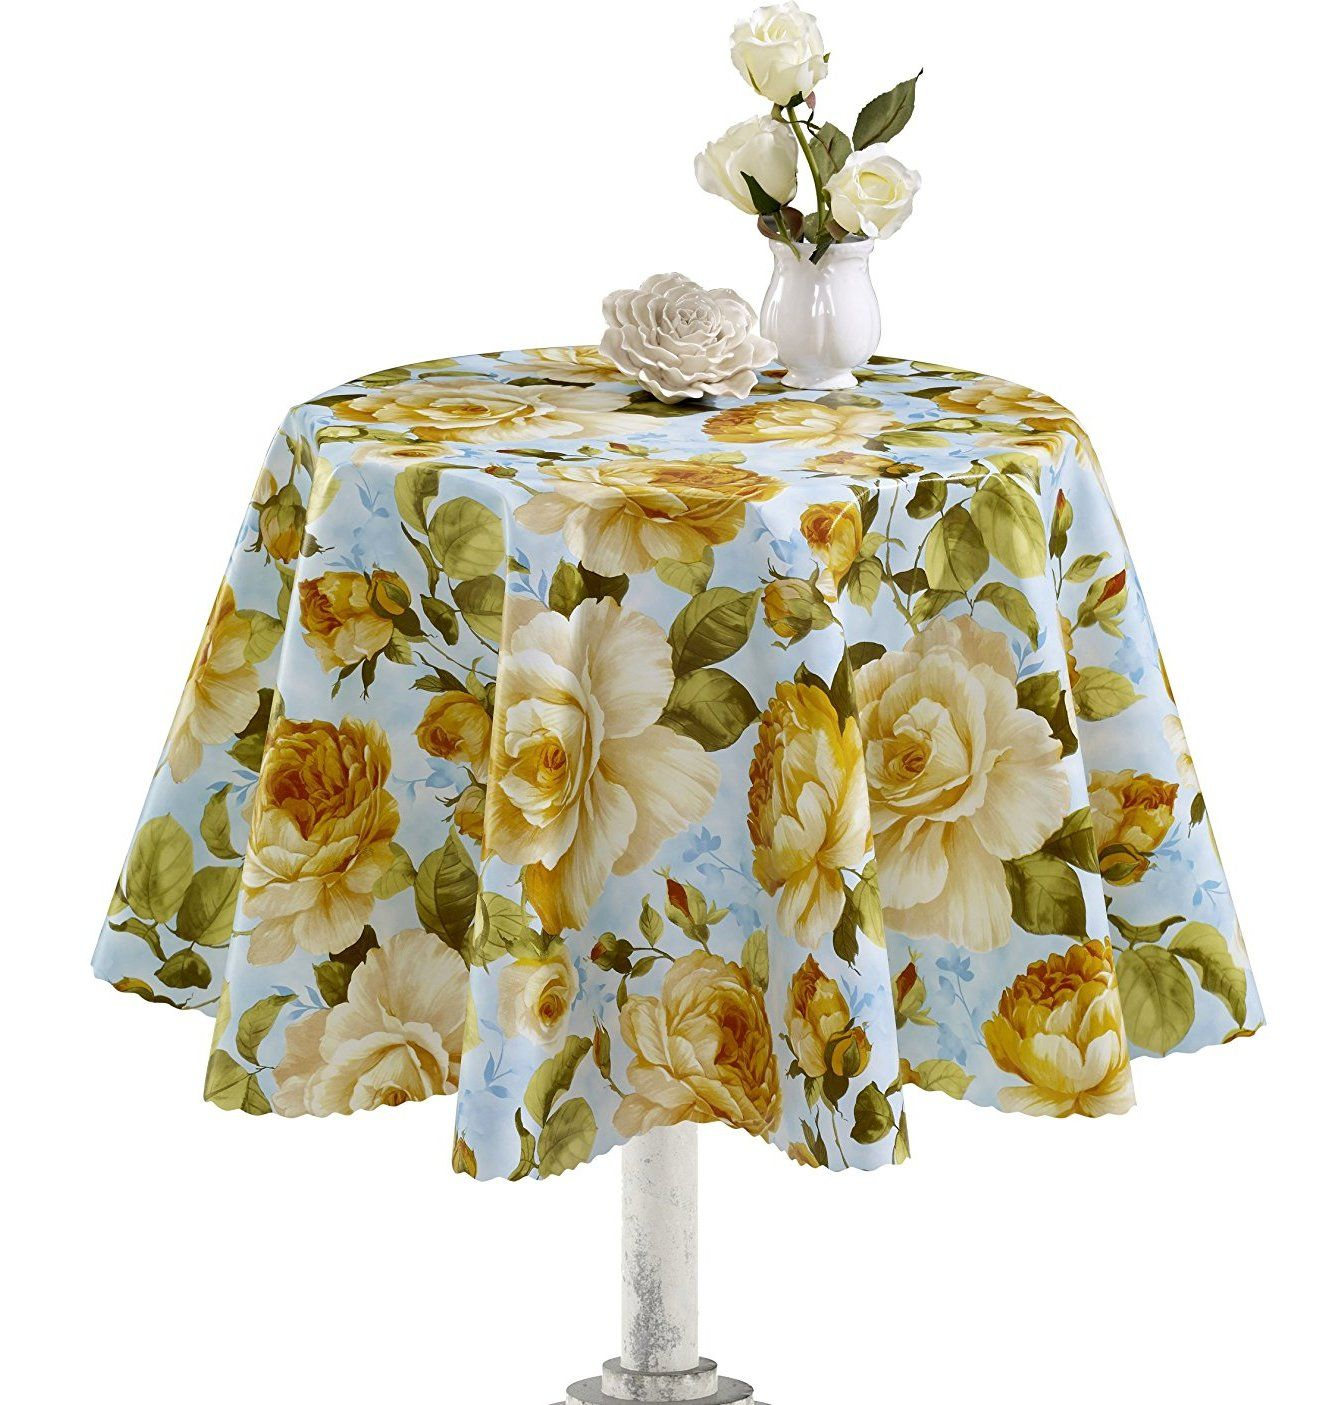 Yellow Rose Vinyl Indoor/Outdoor Tablecloth | Products | Pinterest ...